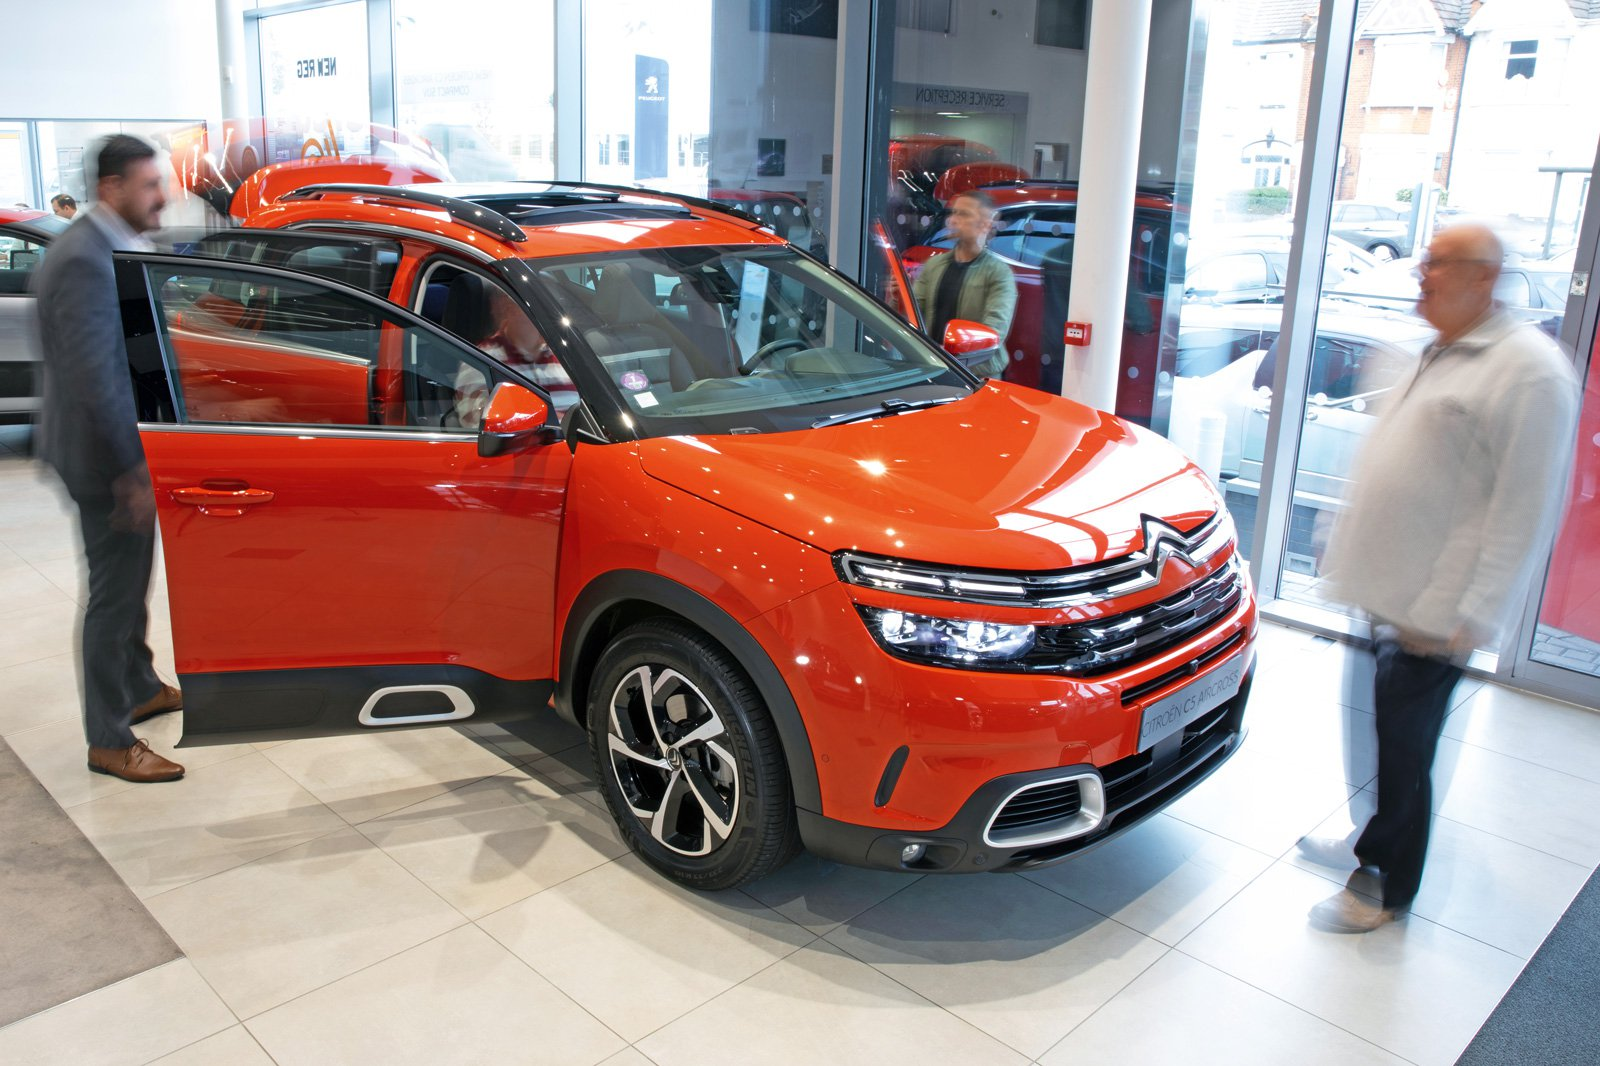 2019 citroen c5 aircross reader test team review what car. Black Bedroom Furniture Sets. Home Design Ideas